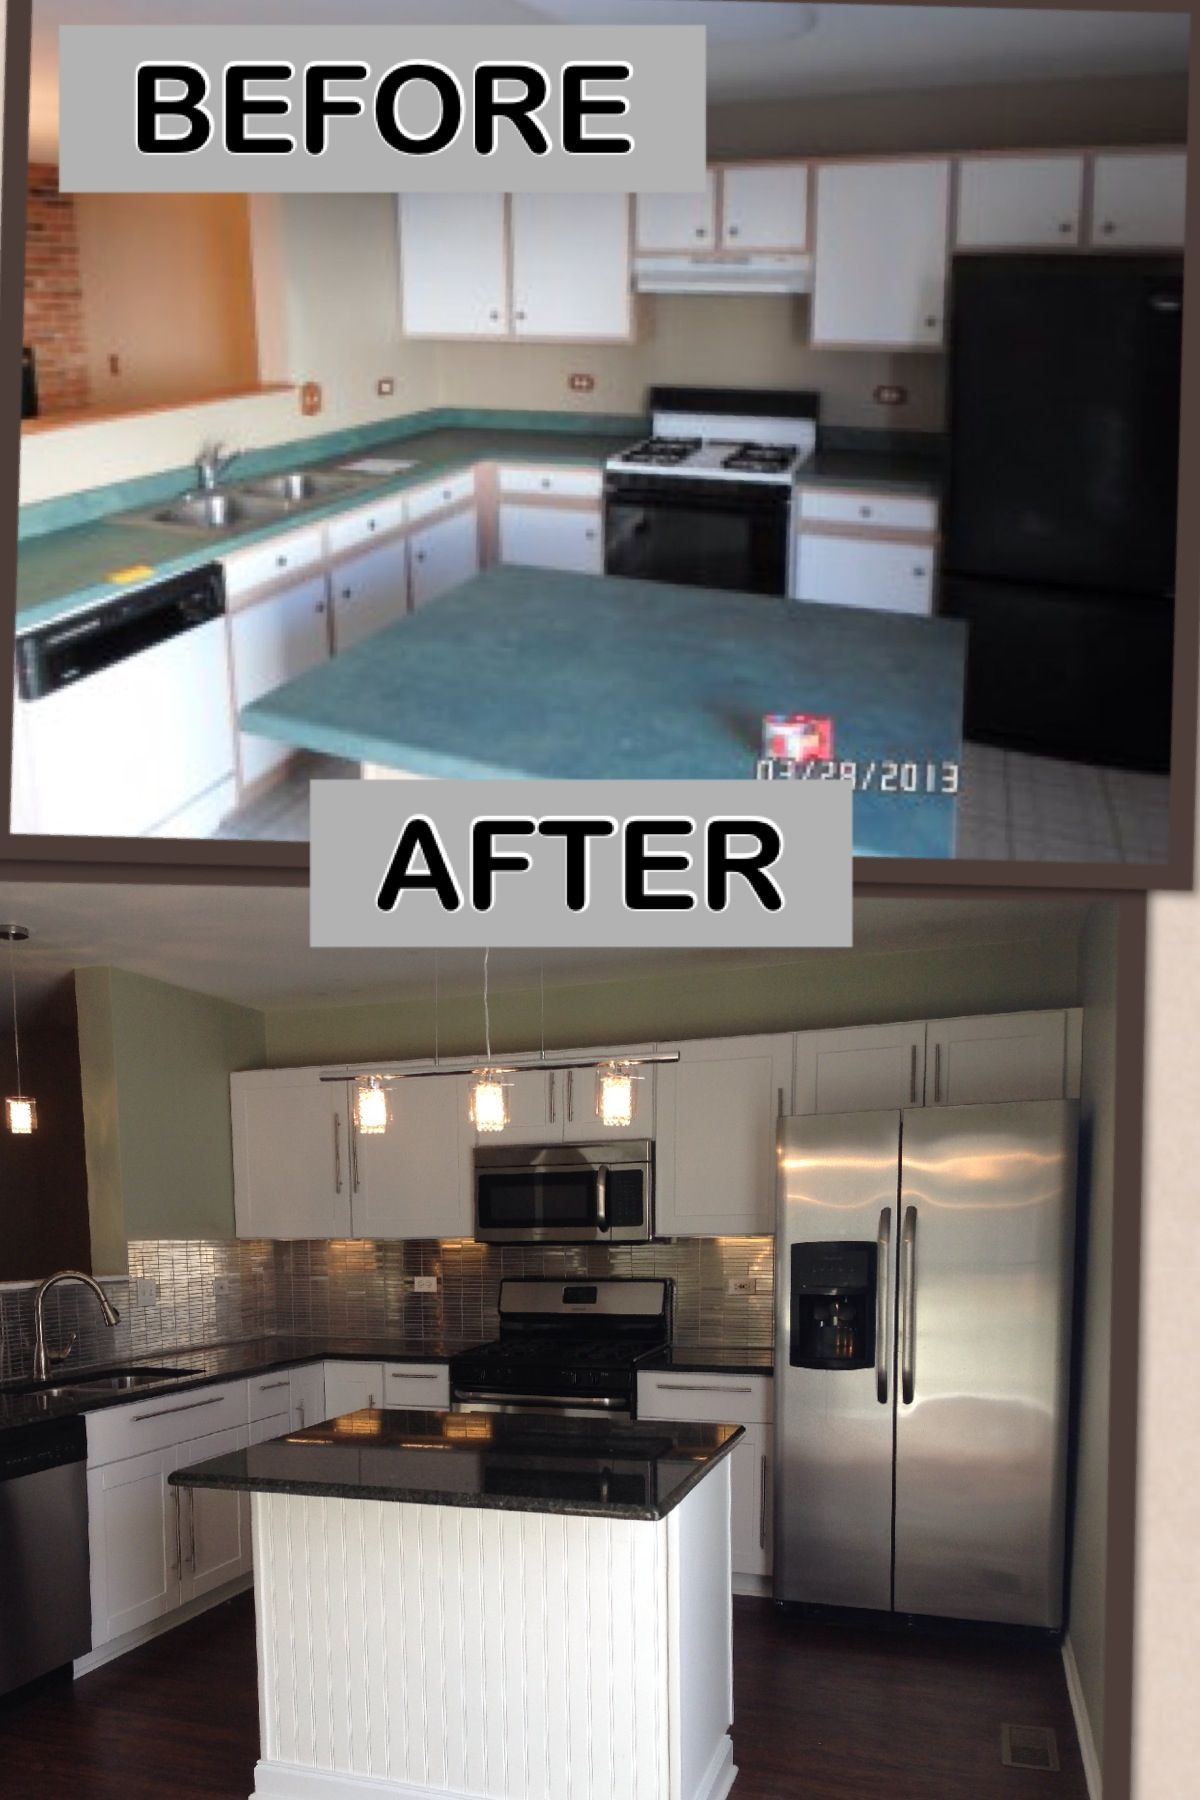 Kitchen remodel on a budget everything brand new for for Budget kitchen cabinet ideas